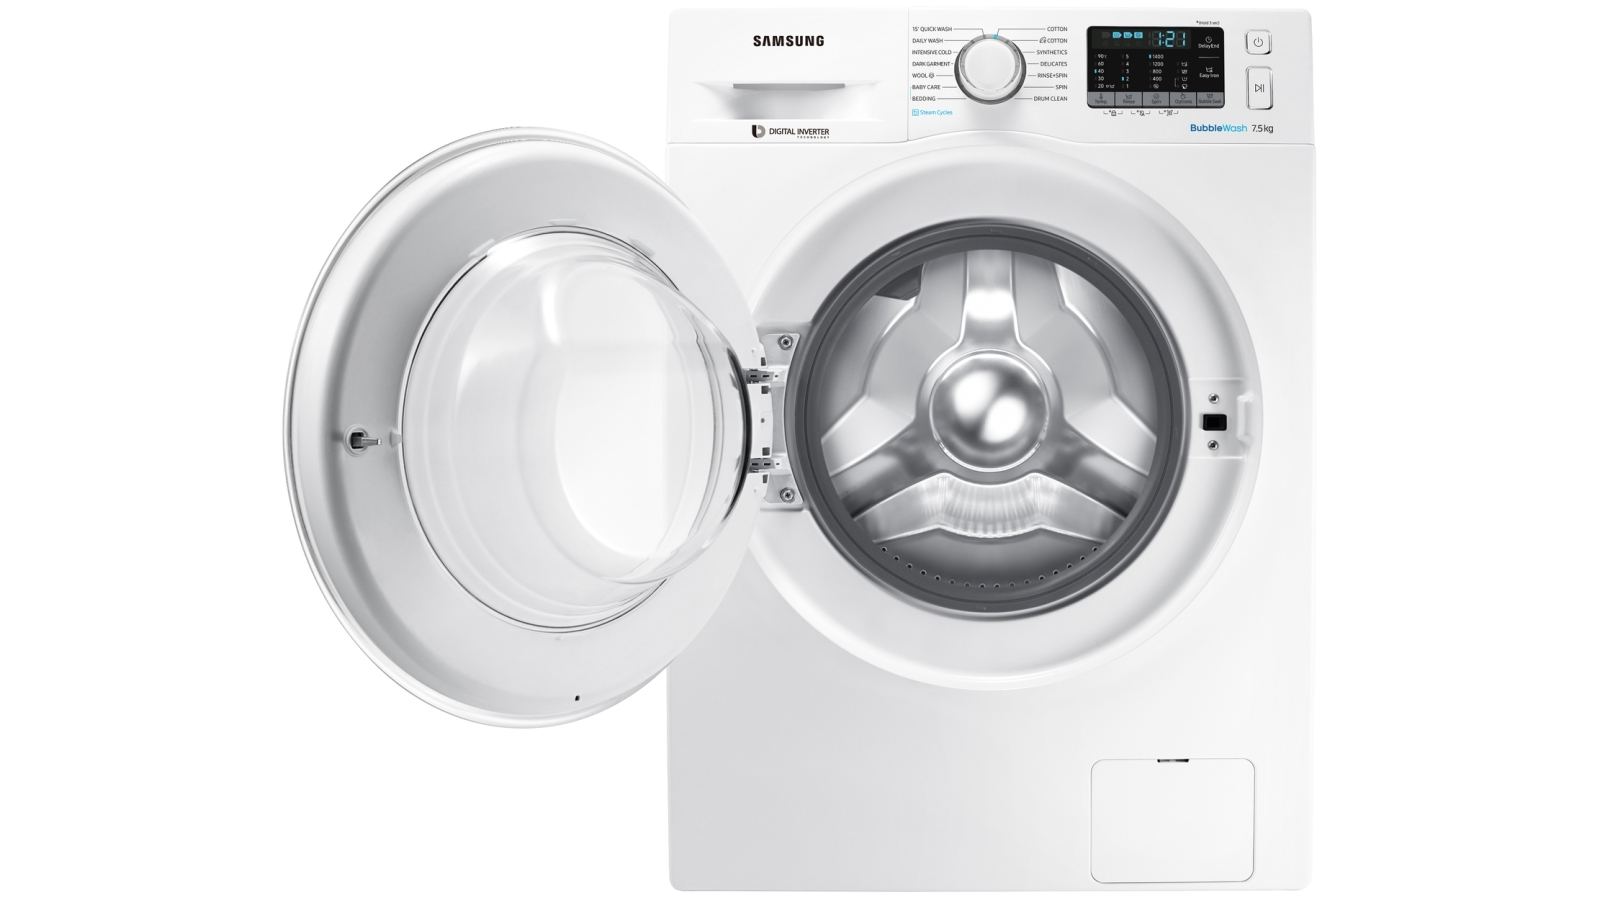 Buy Samsung 7 5kg Bubblewash Front Load Washing Machine With Steam Harvey Norman Au